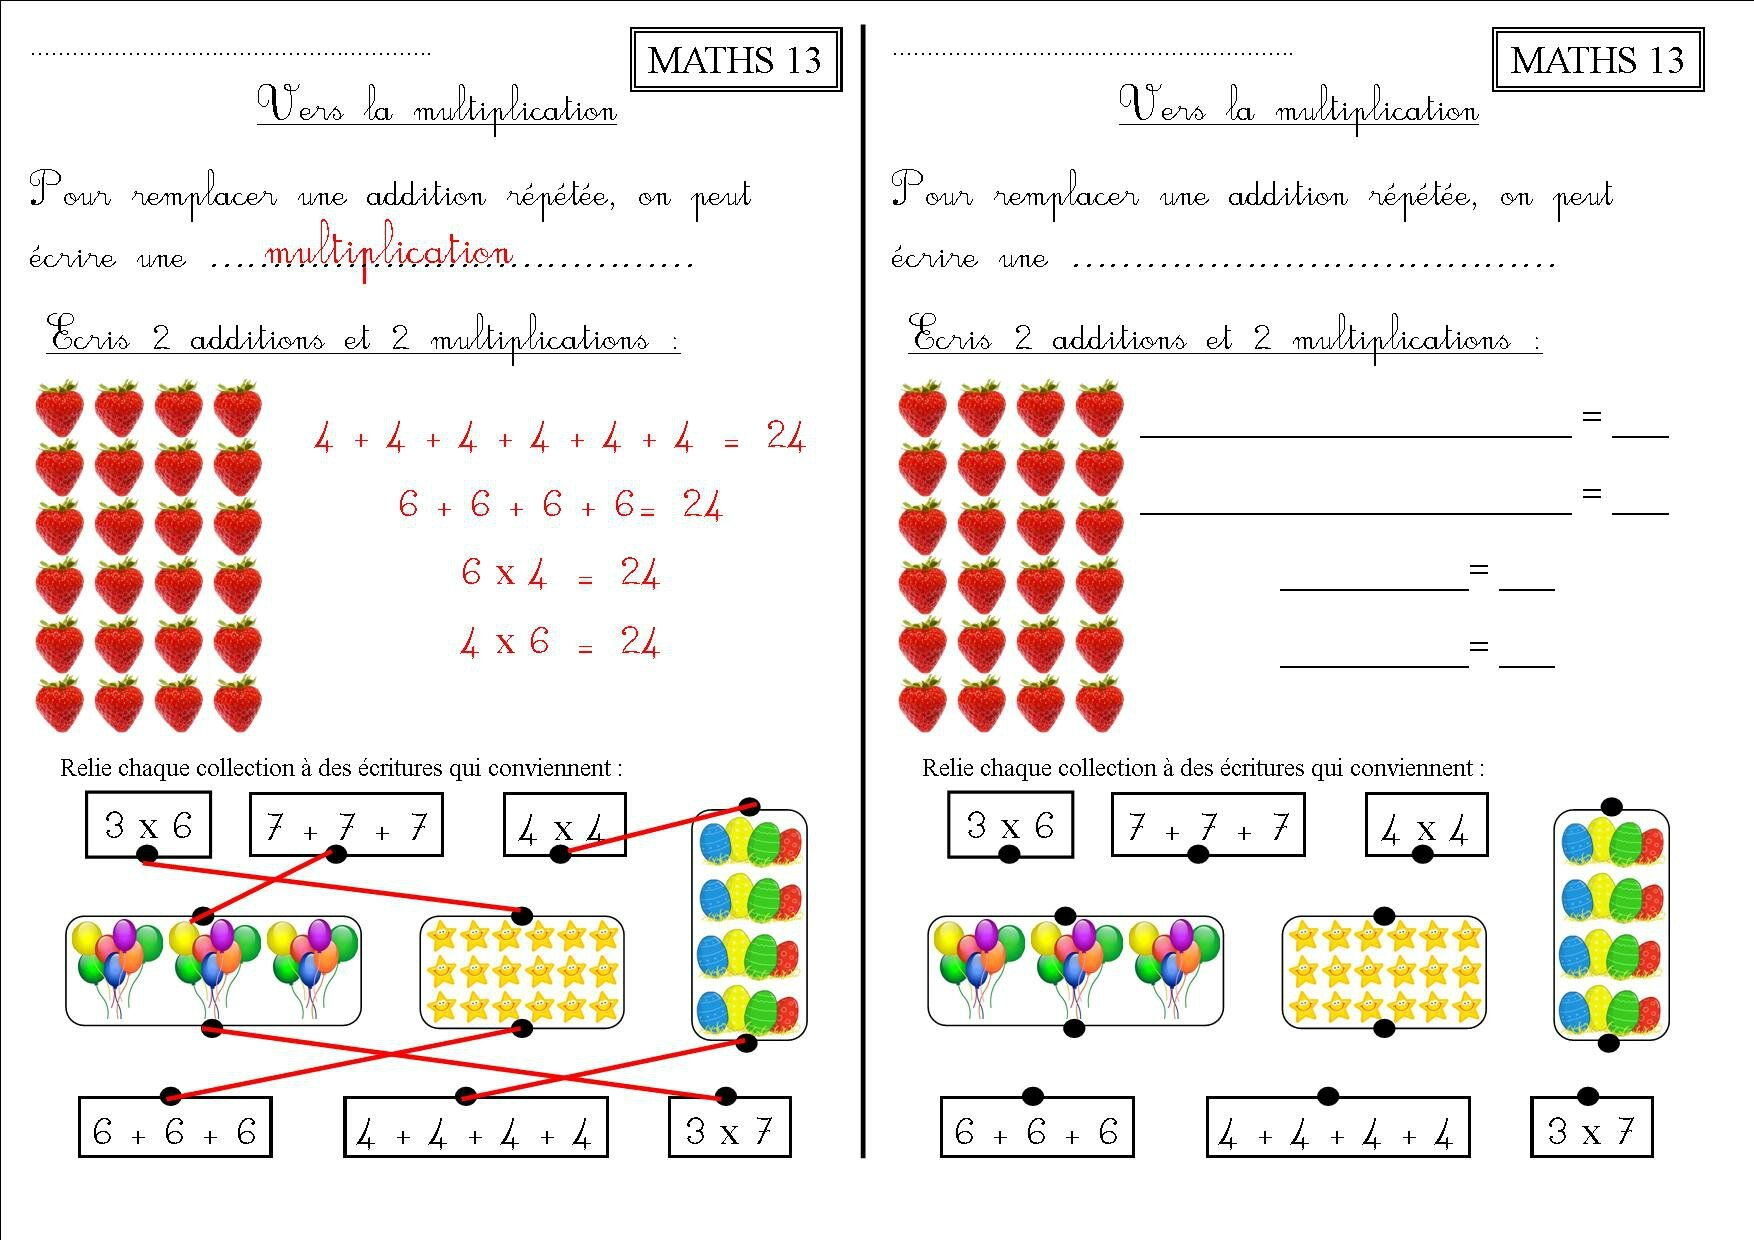 Maths 13 ce1 vers la multiplication la classe des ce for La table de 6 multiplication